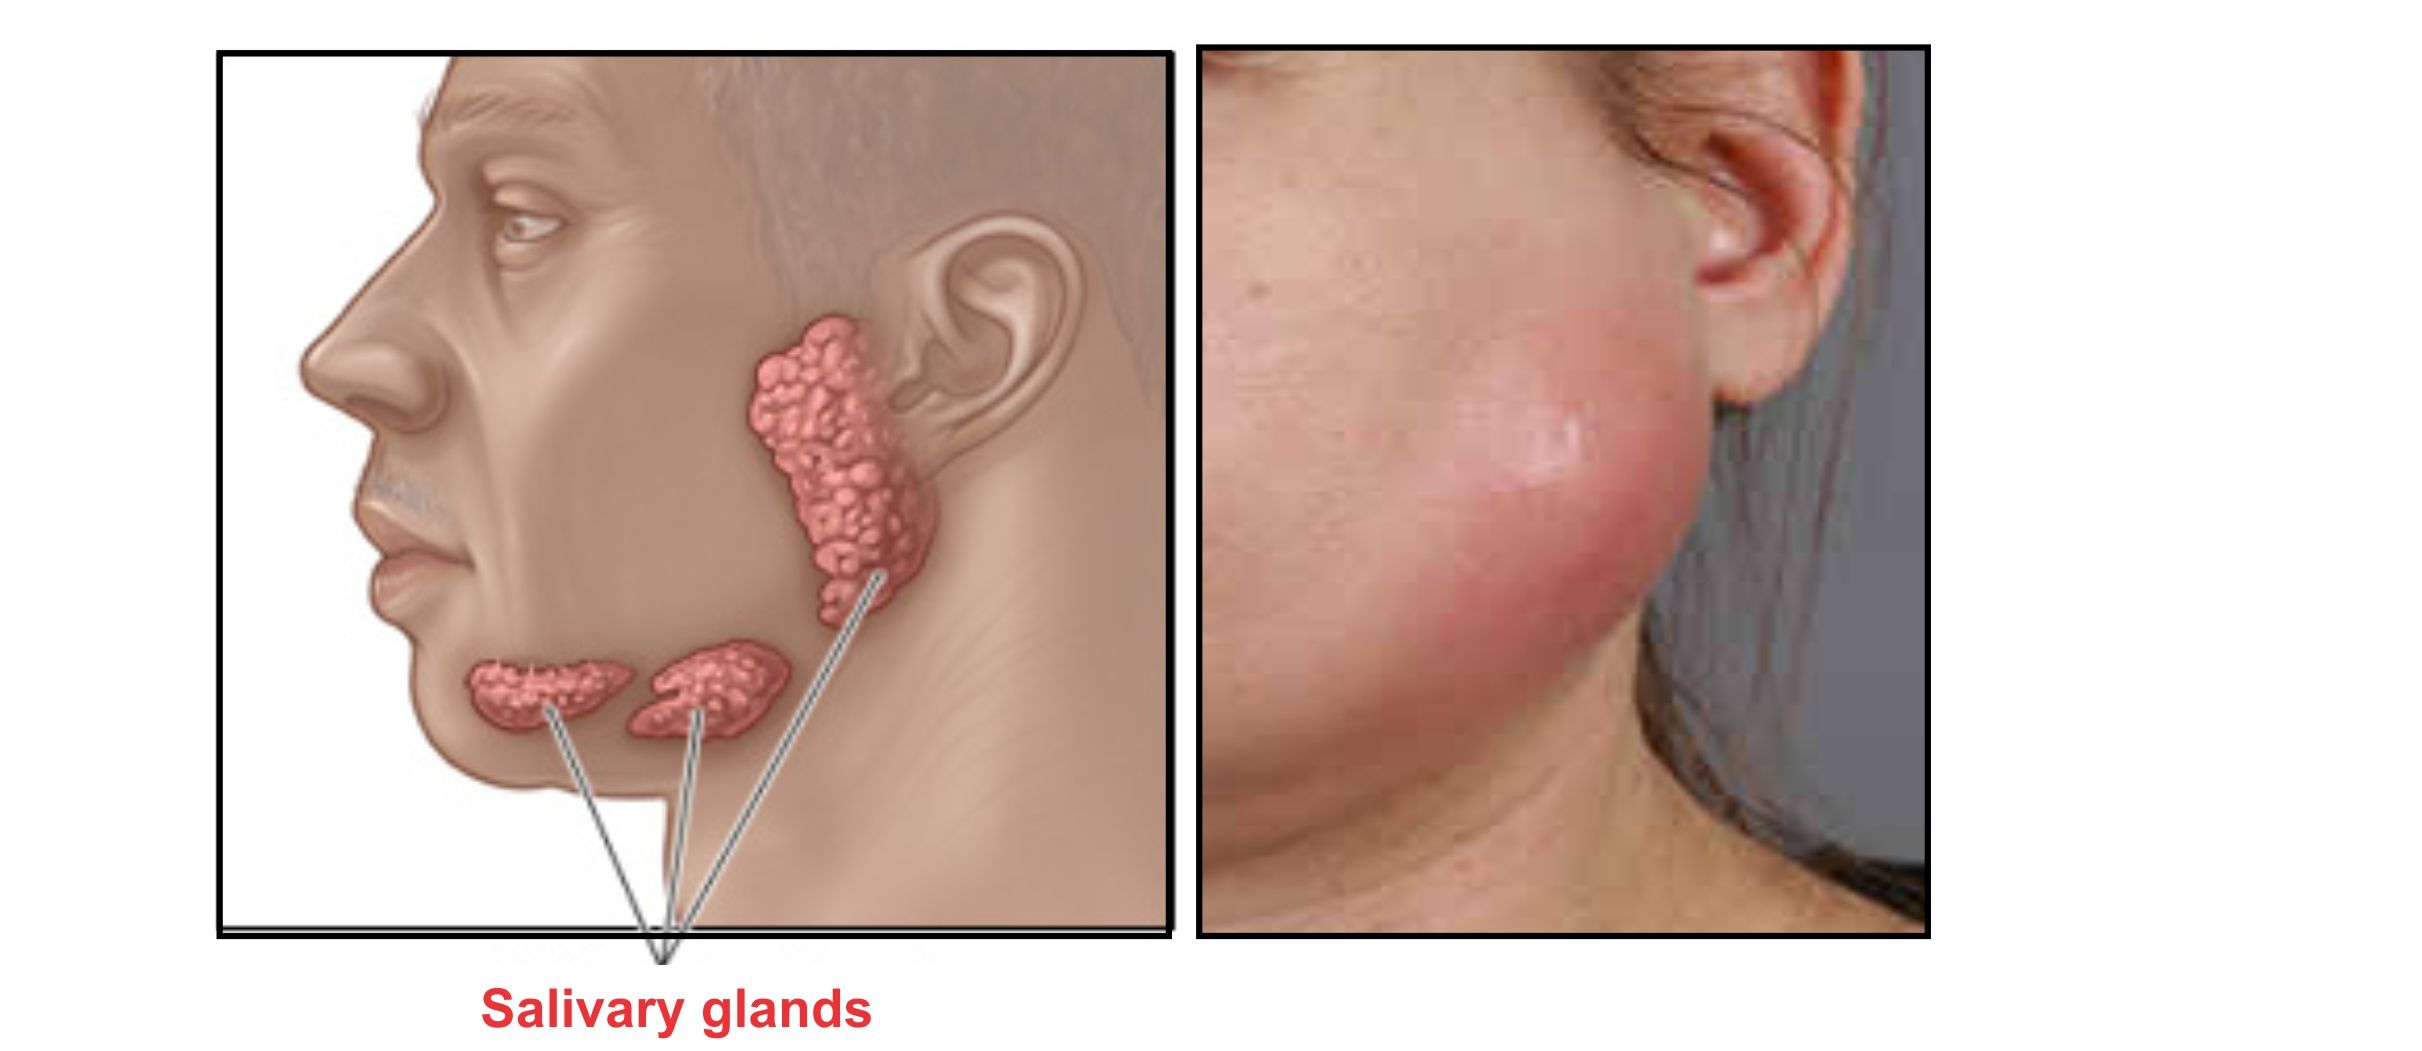 hight resolution of infected salivary glands can cause a lump under jaw or jaw line